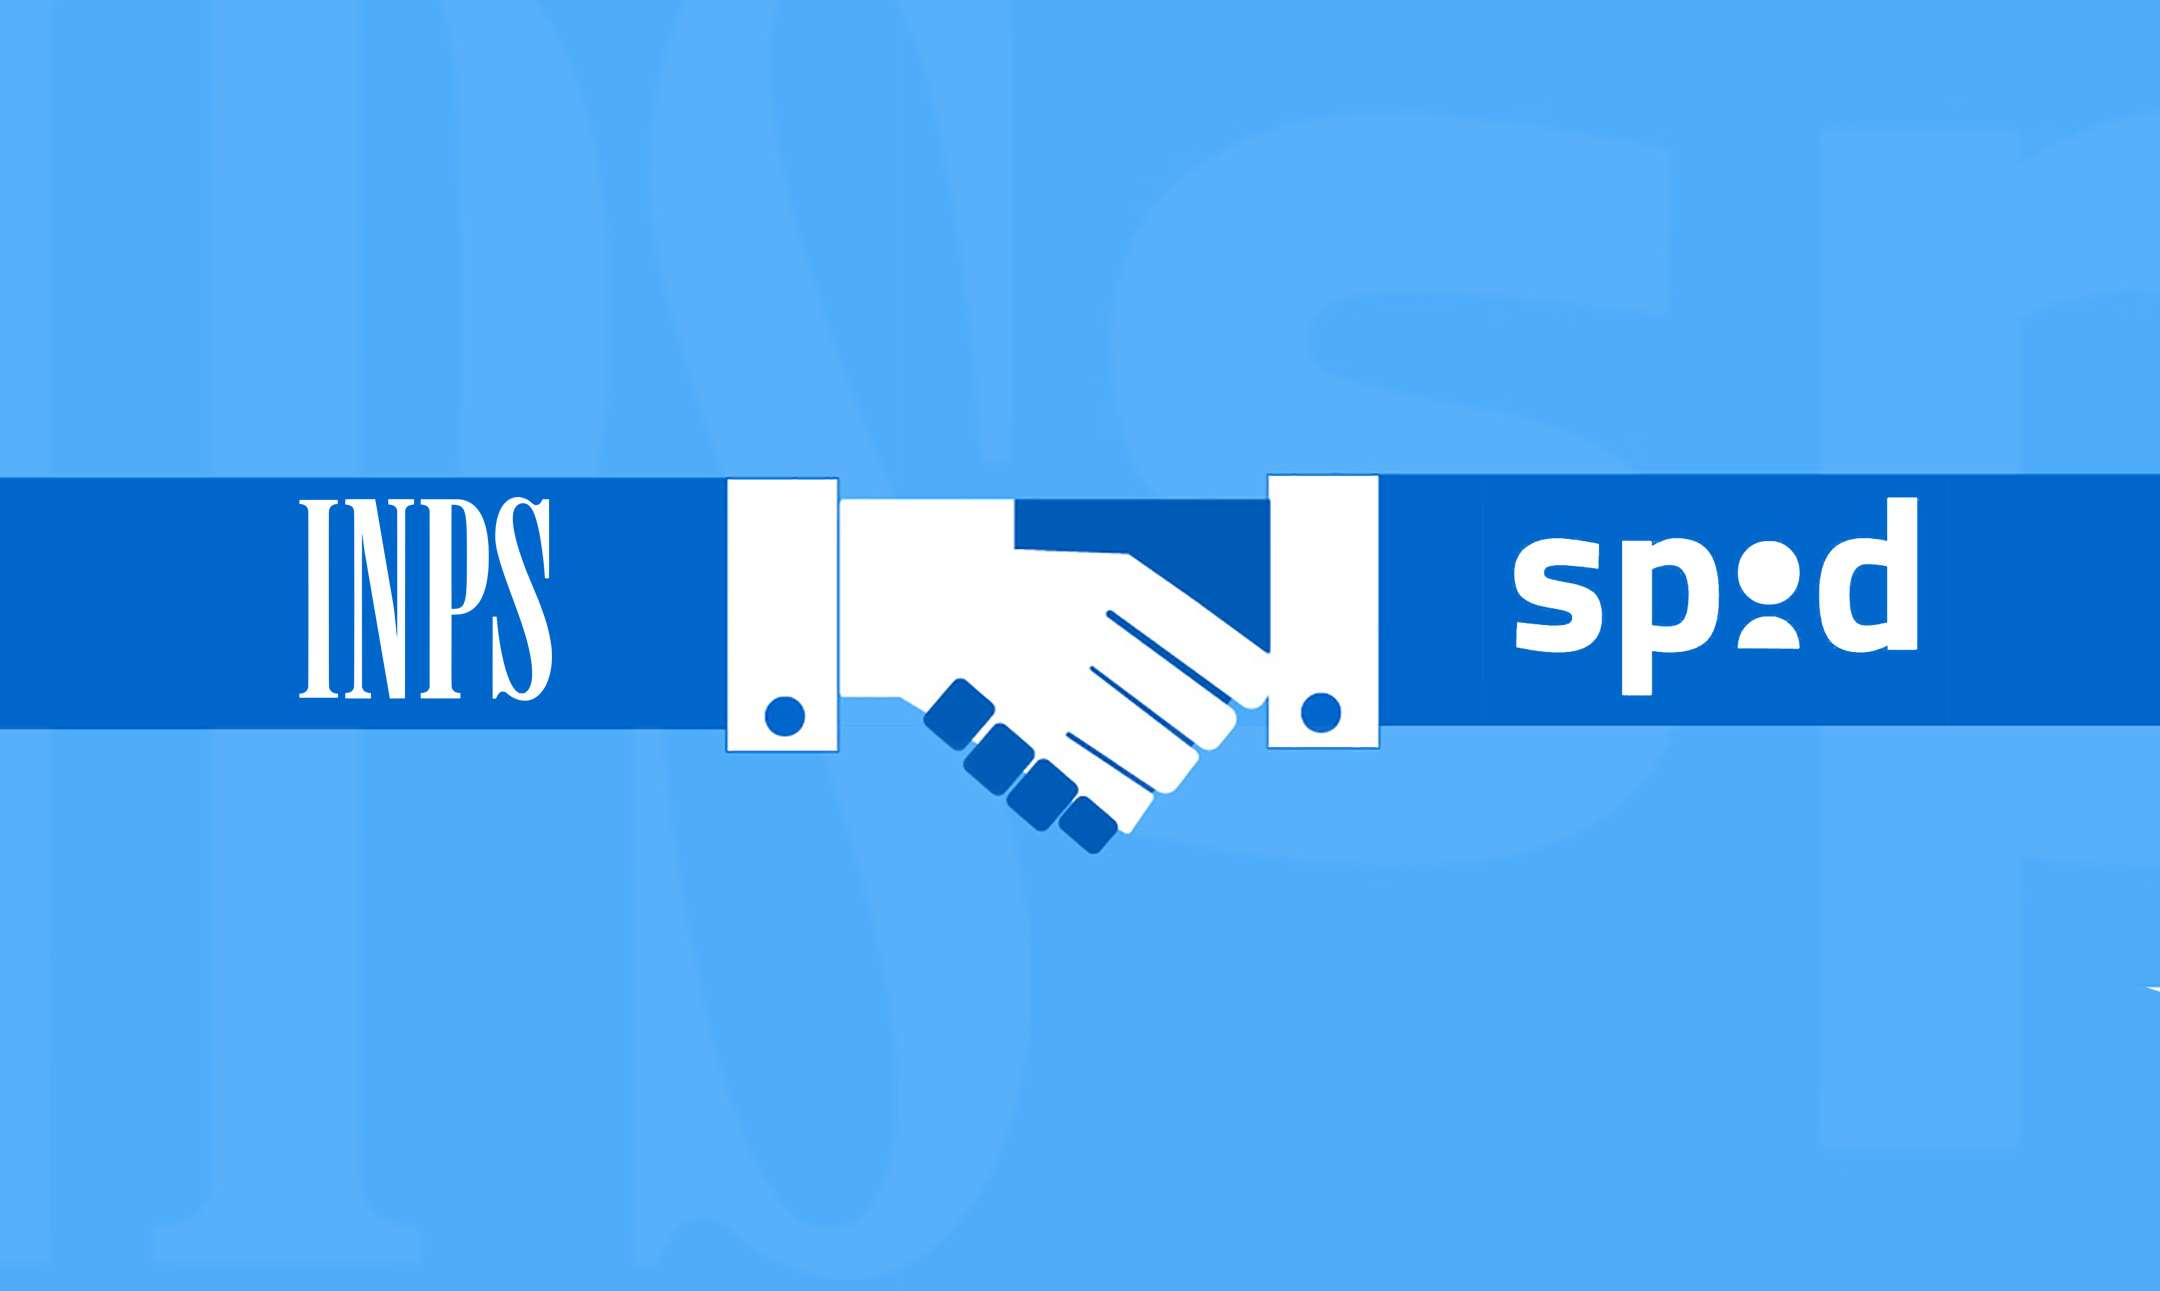 INPS: from PIN to SPID, now we are